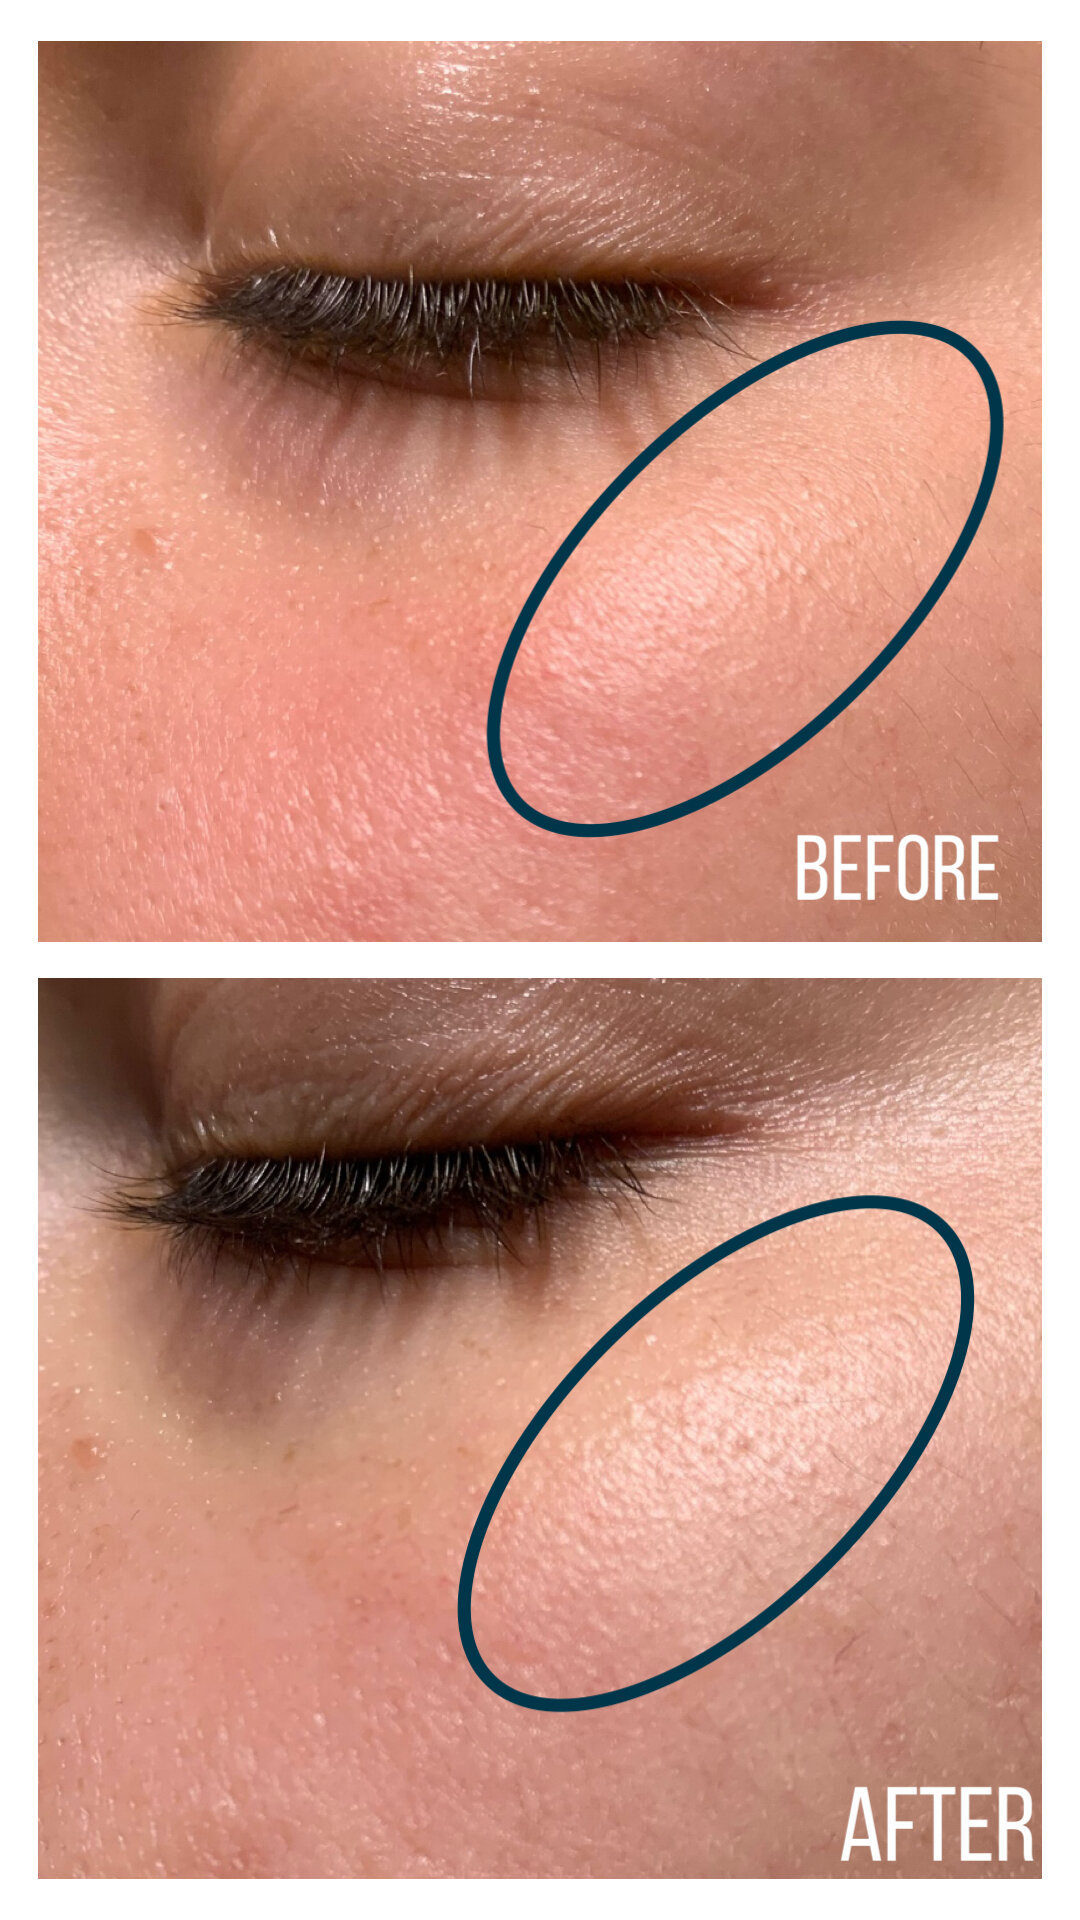 L'Oréal Revitalift Laser X3 Anti-Ageing Power Eye Cream (Before and After)